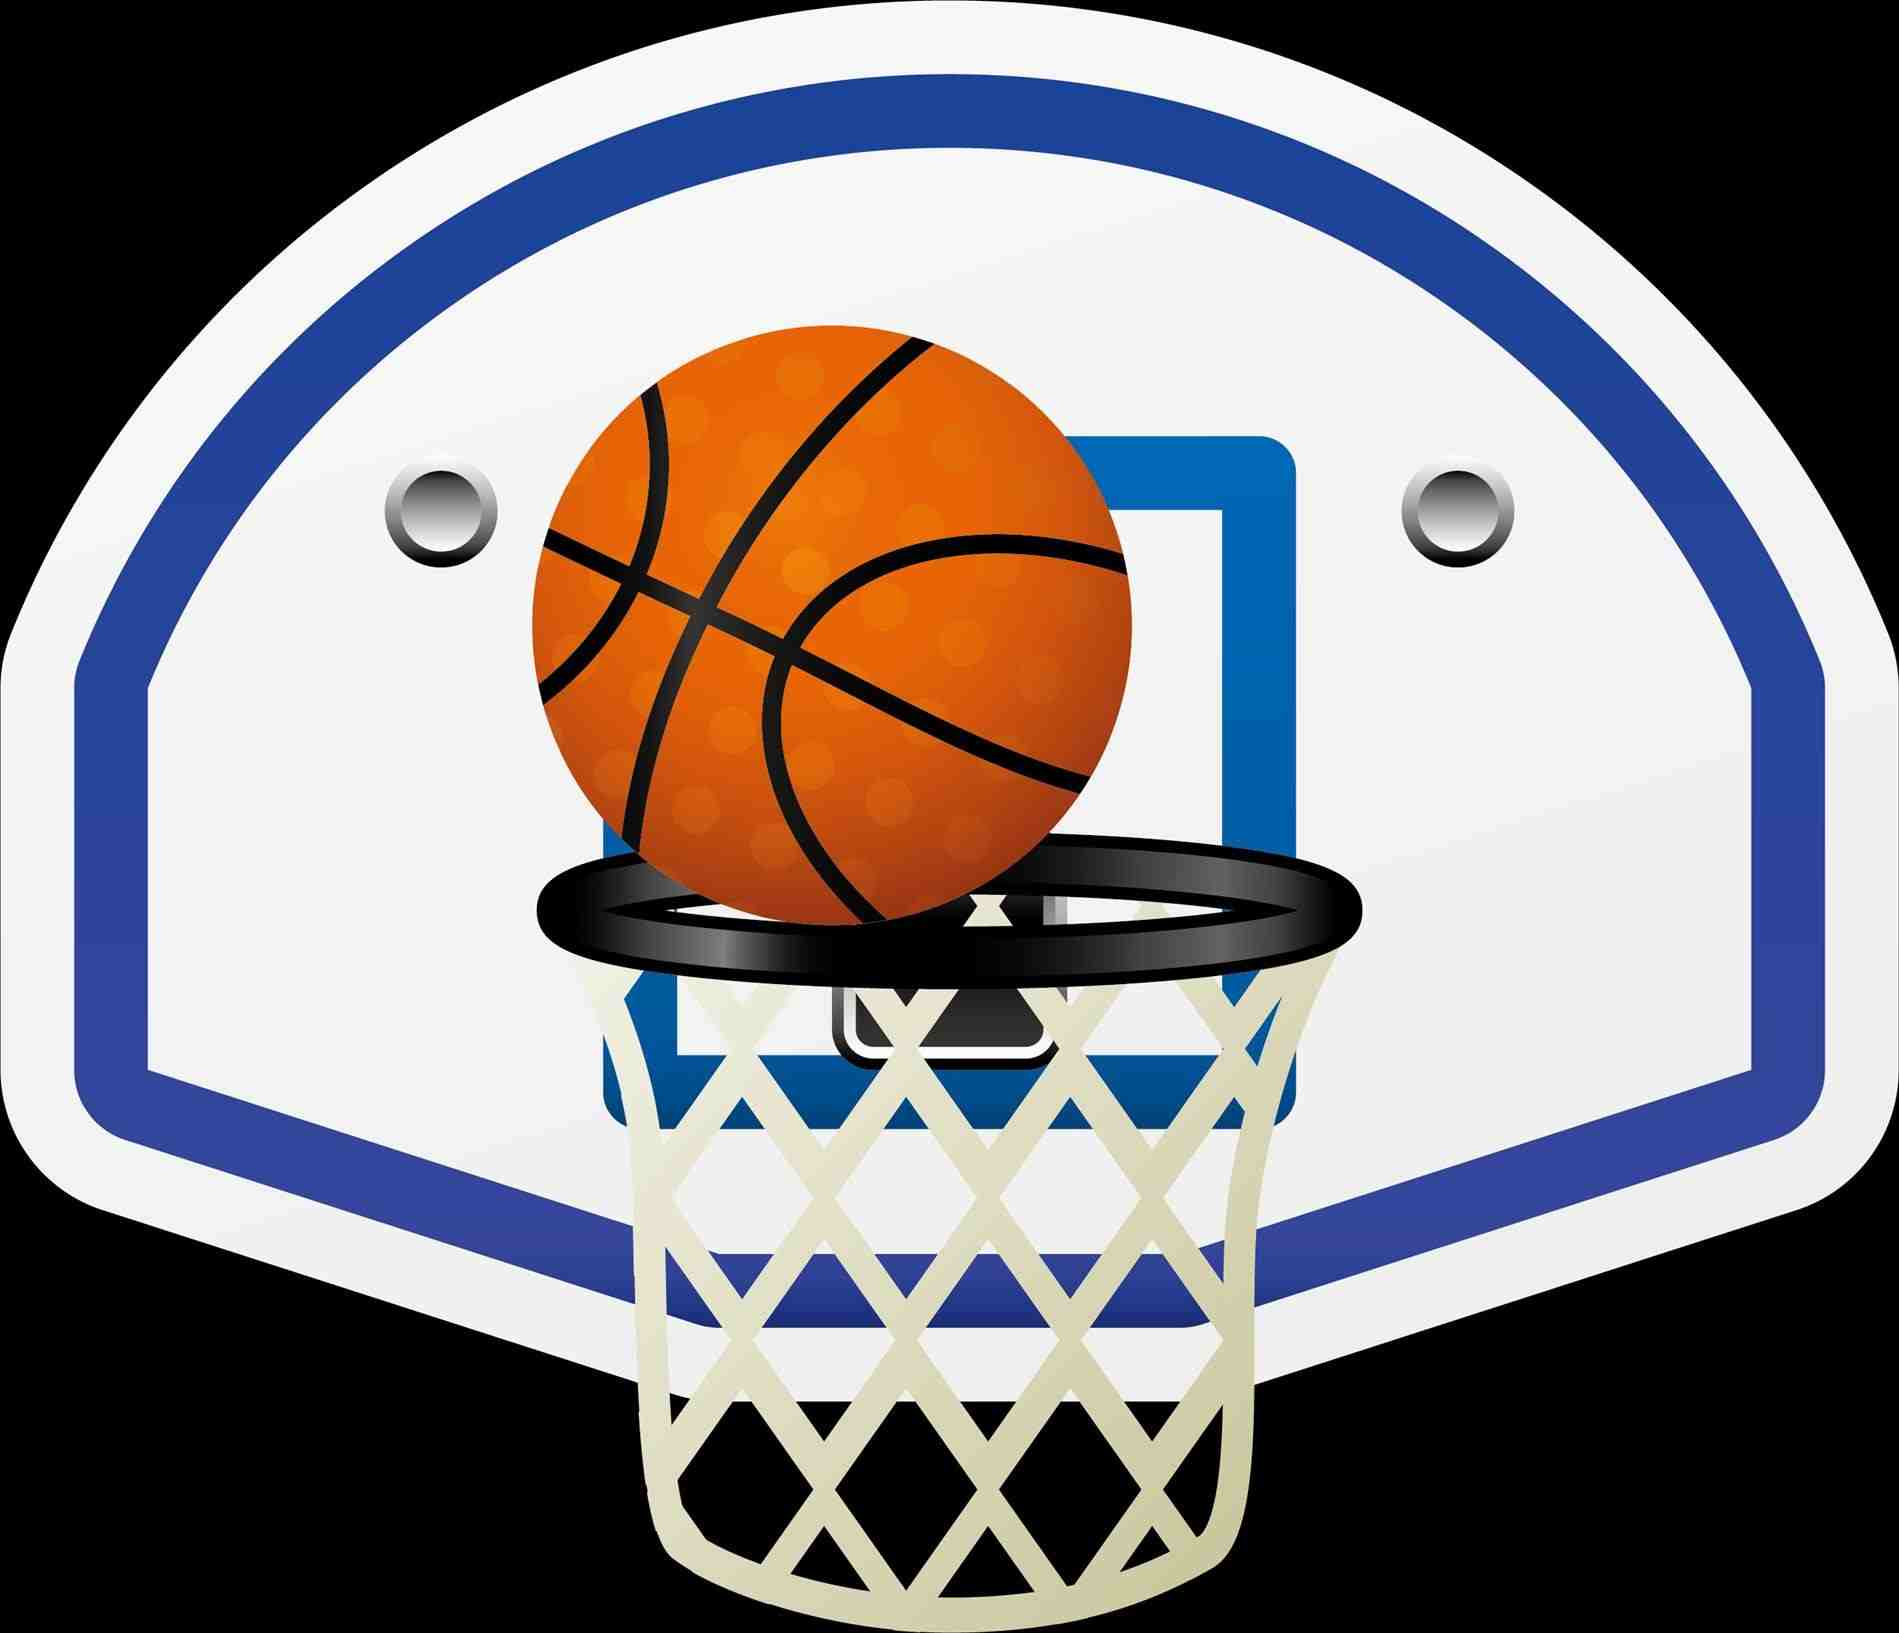 Basketball Goal Clipart at GetDrawings.com.